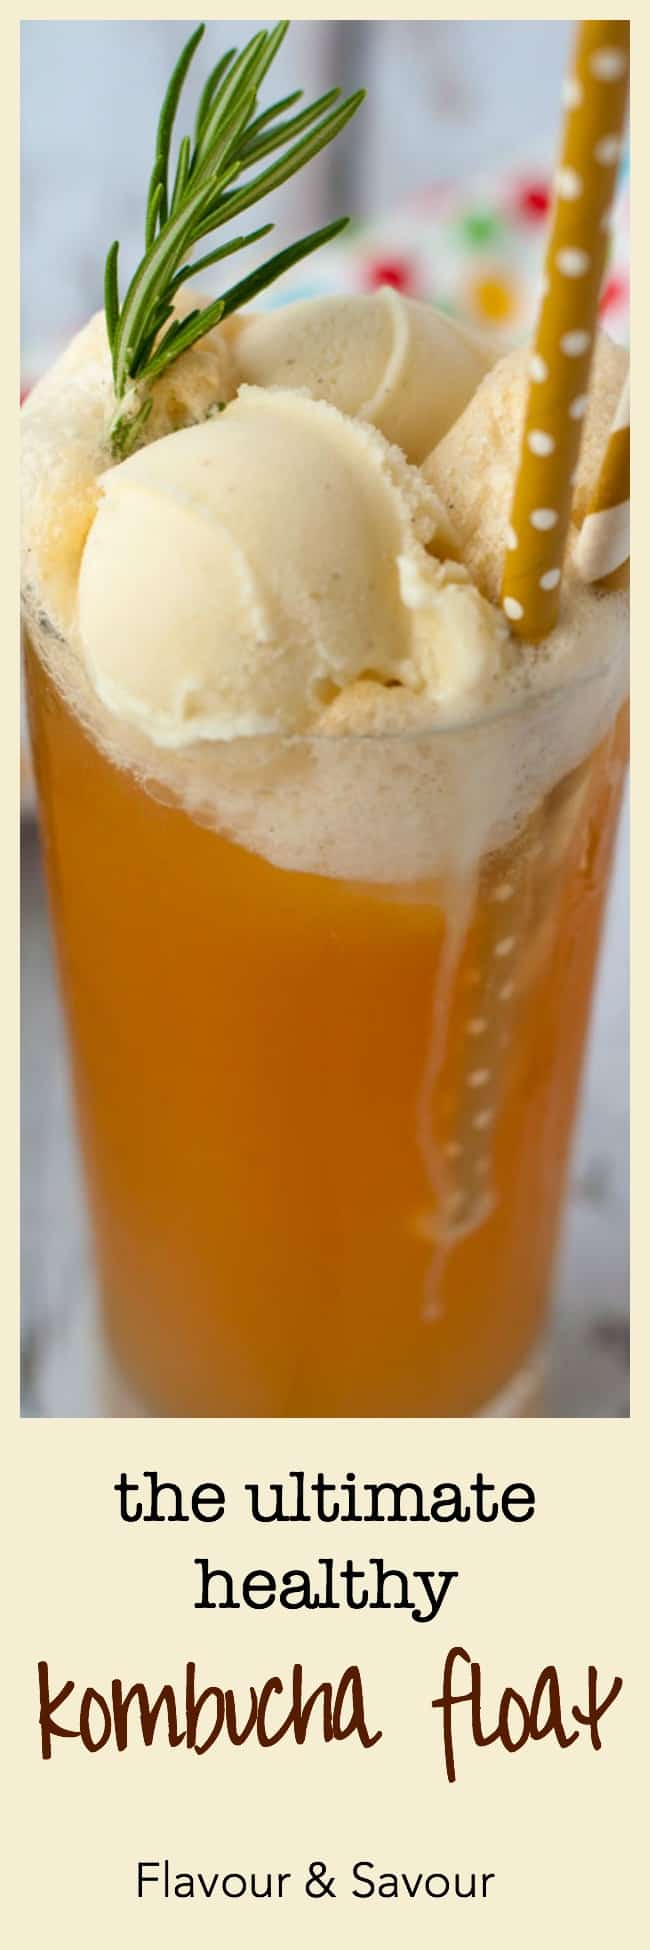 The Ultimate Healthy Kombucha Float!